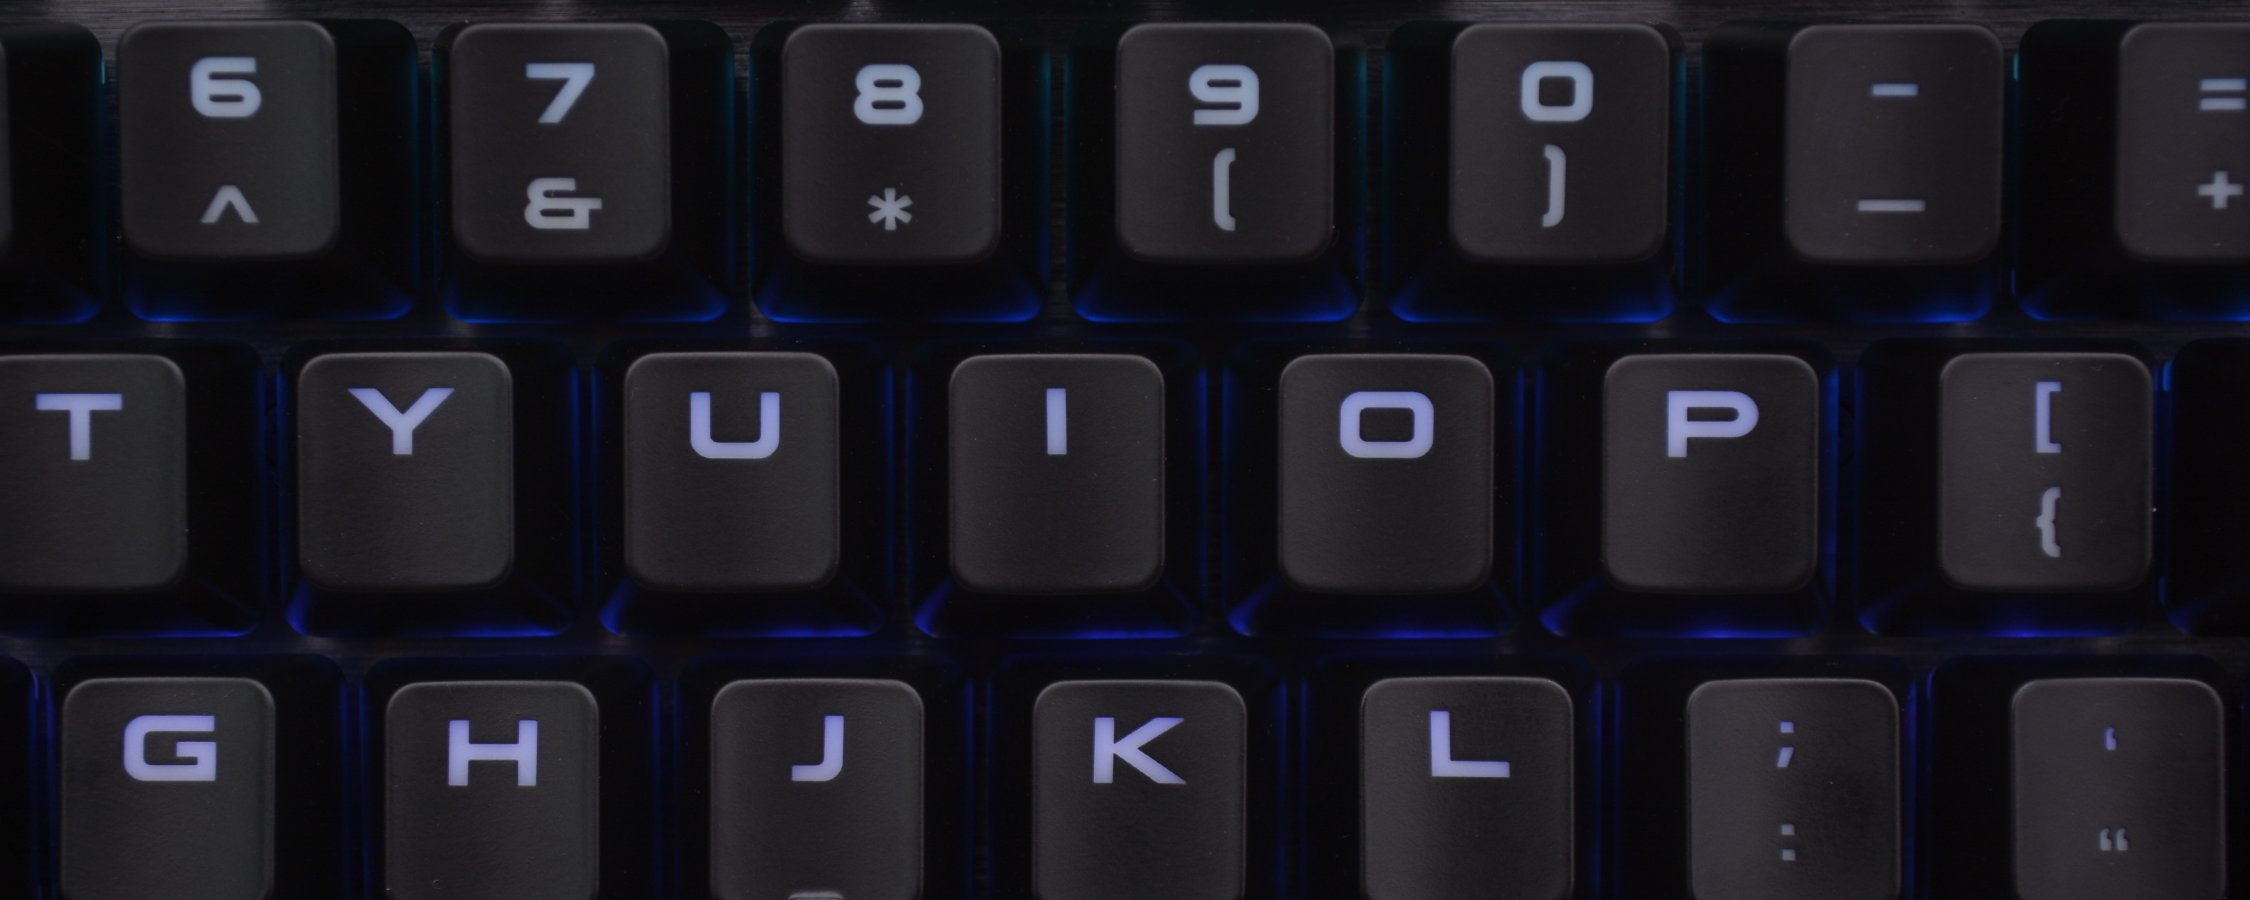 Corsair K70 Rgb Rapidfire Mechanical Keyboard Review Techspot Gaming Red Switch Used